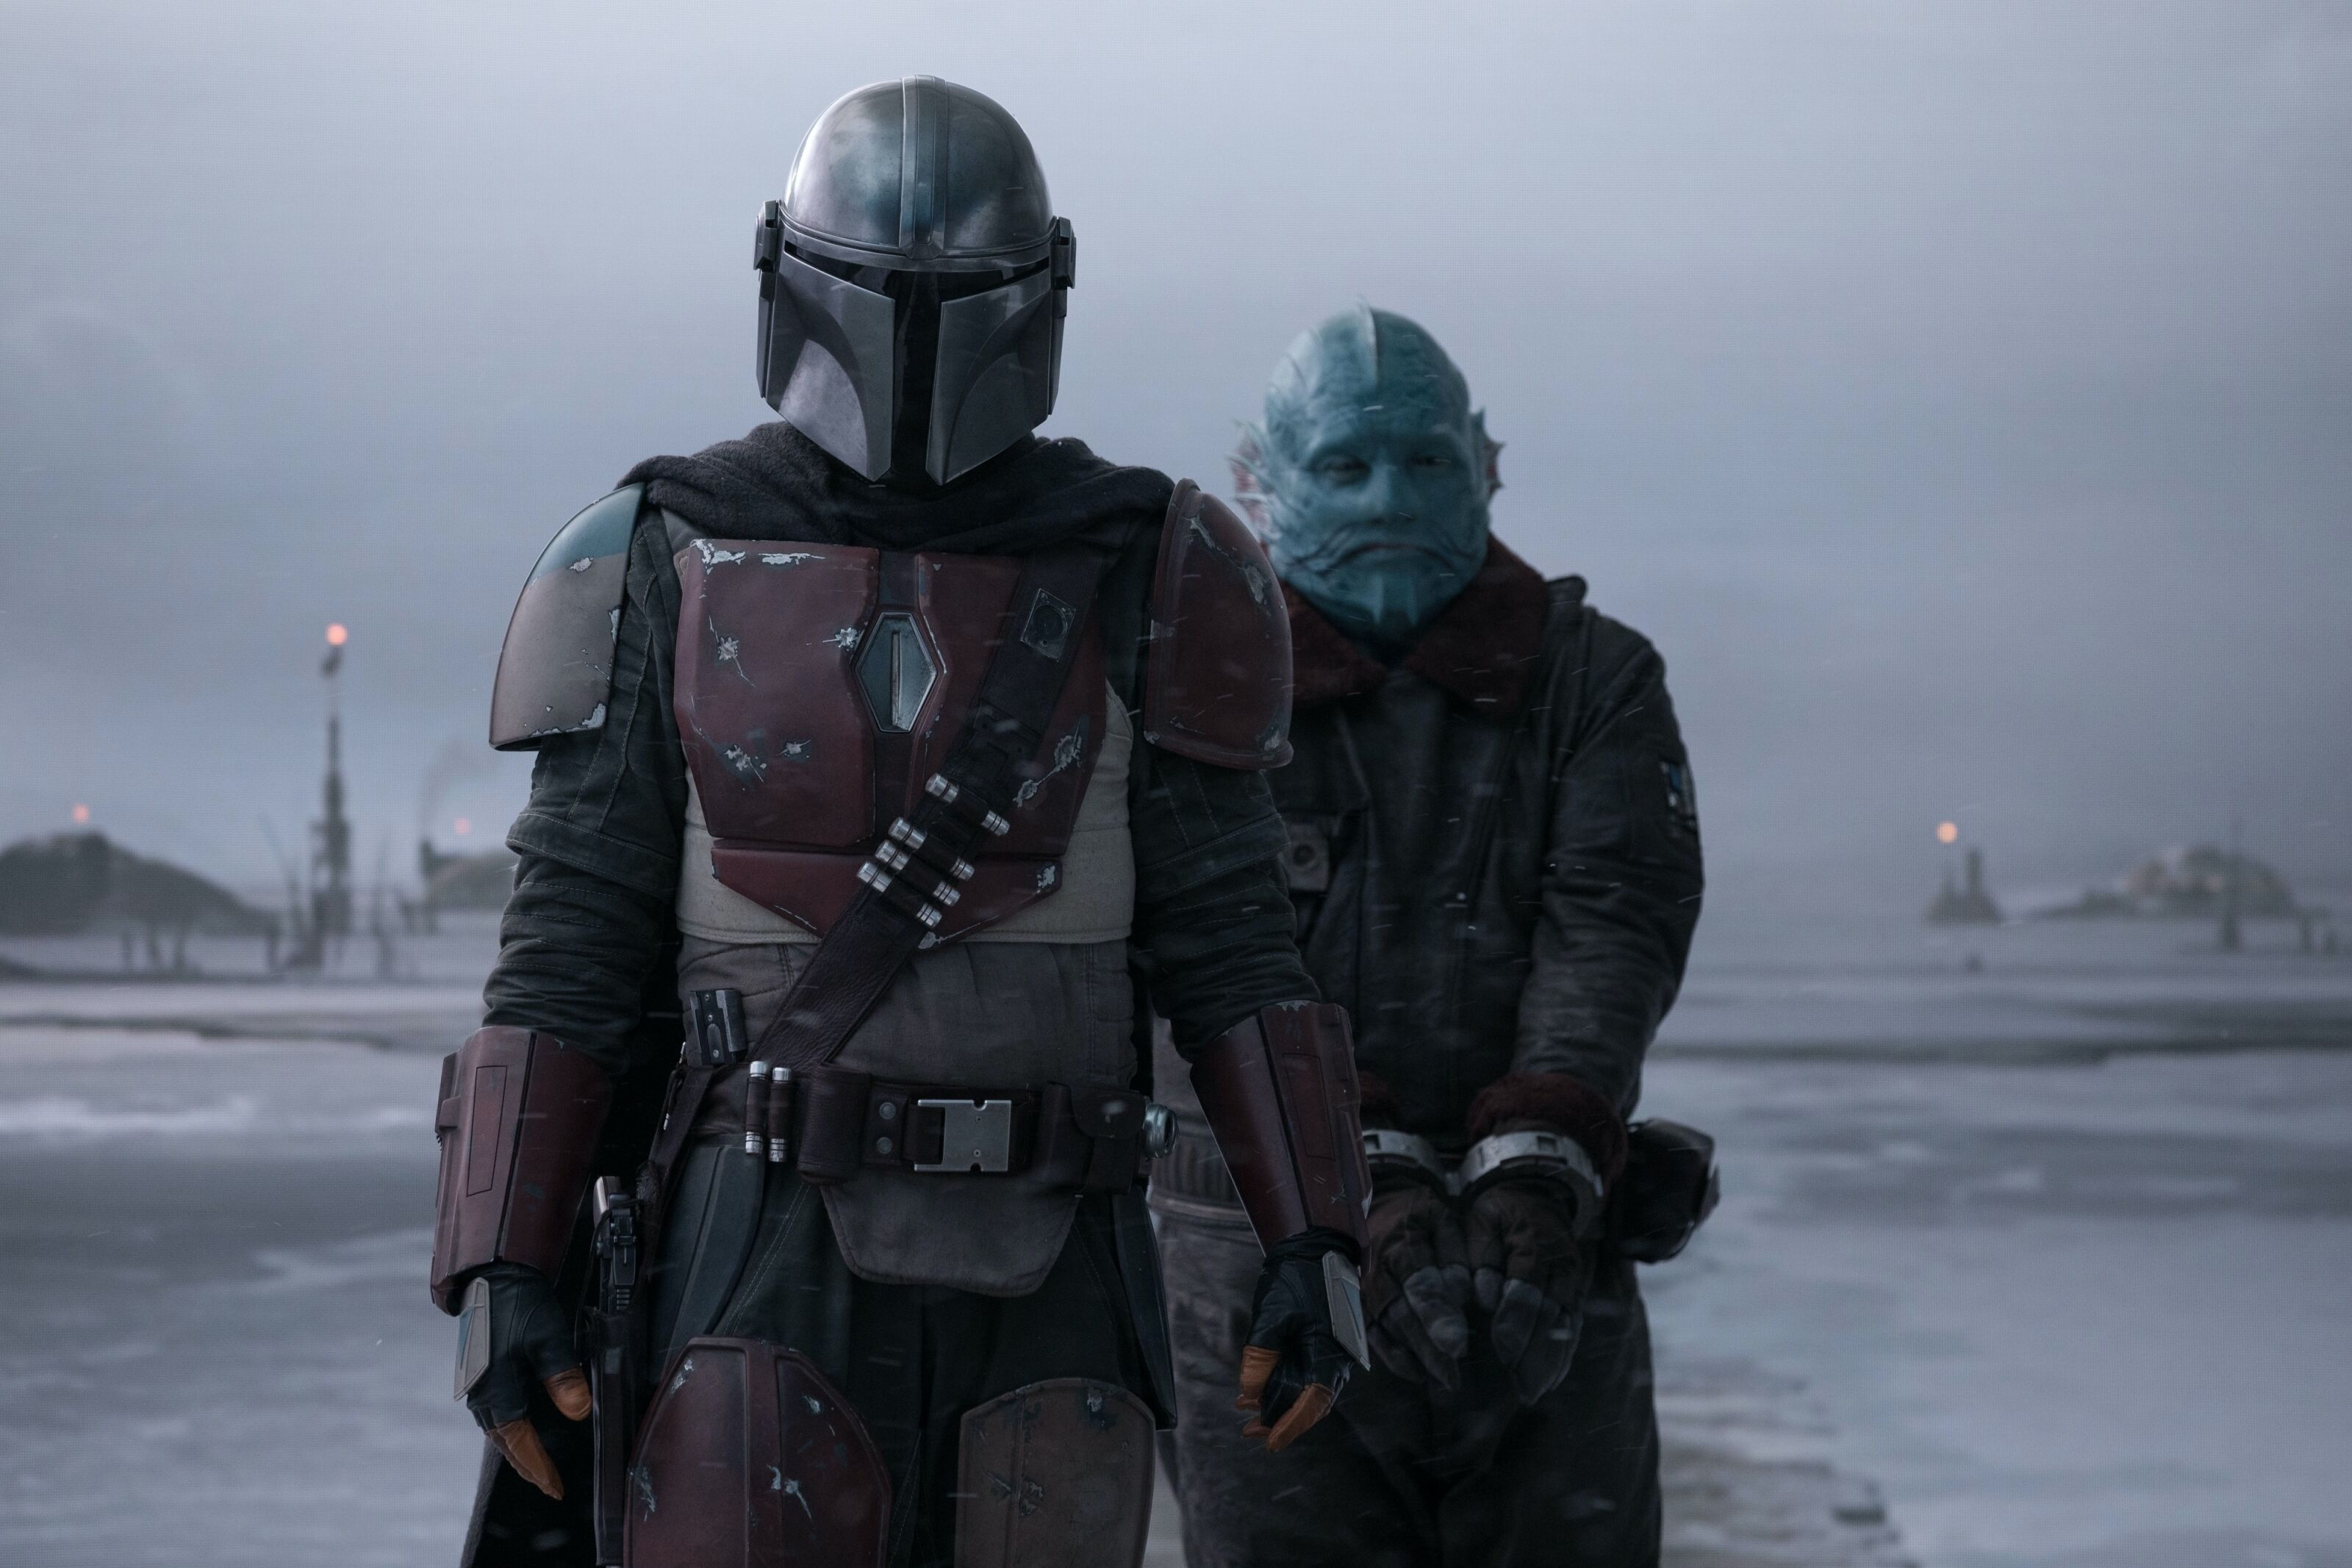 A Mandalorian with ethics and morals: This bounty hunter is soft!